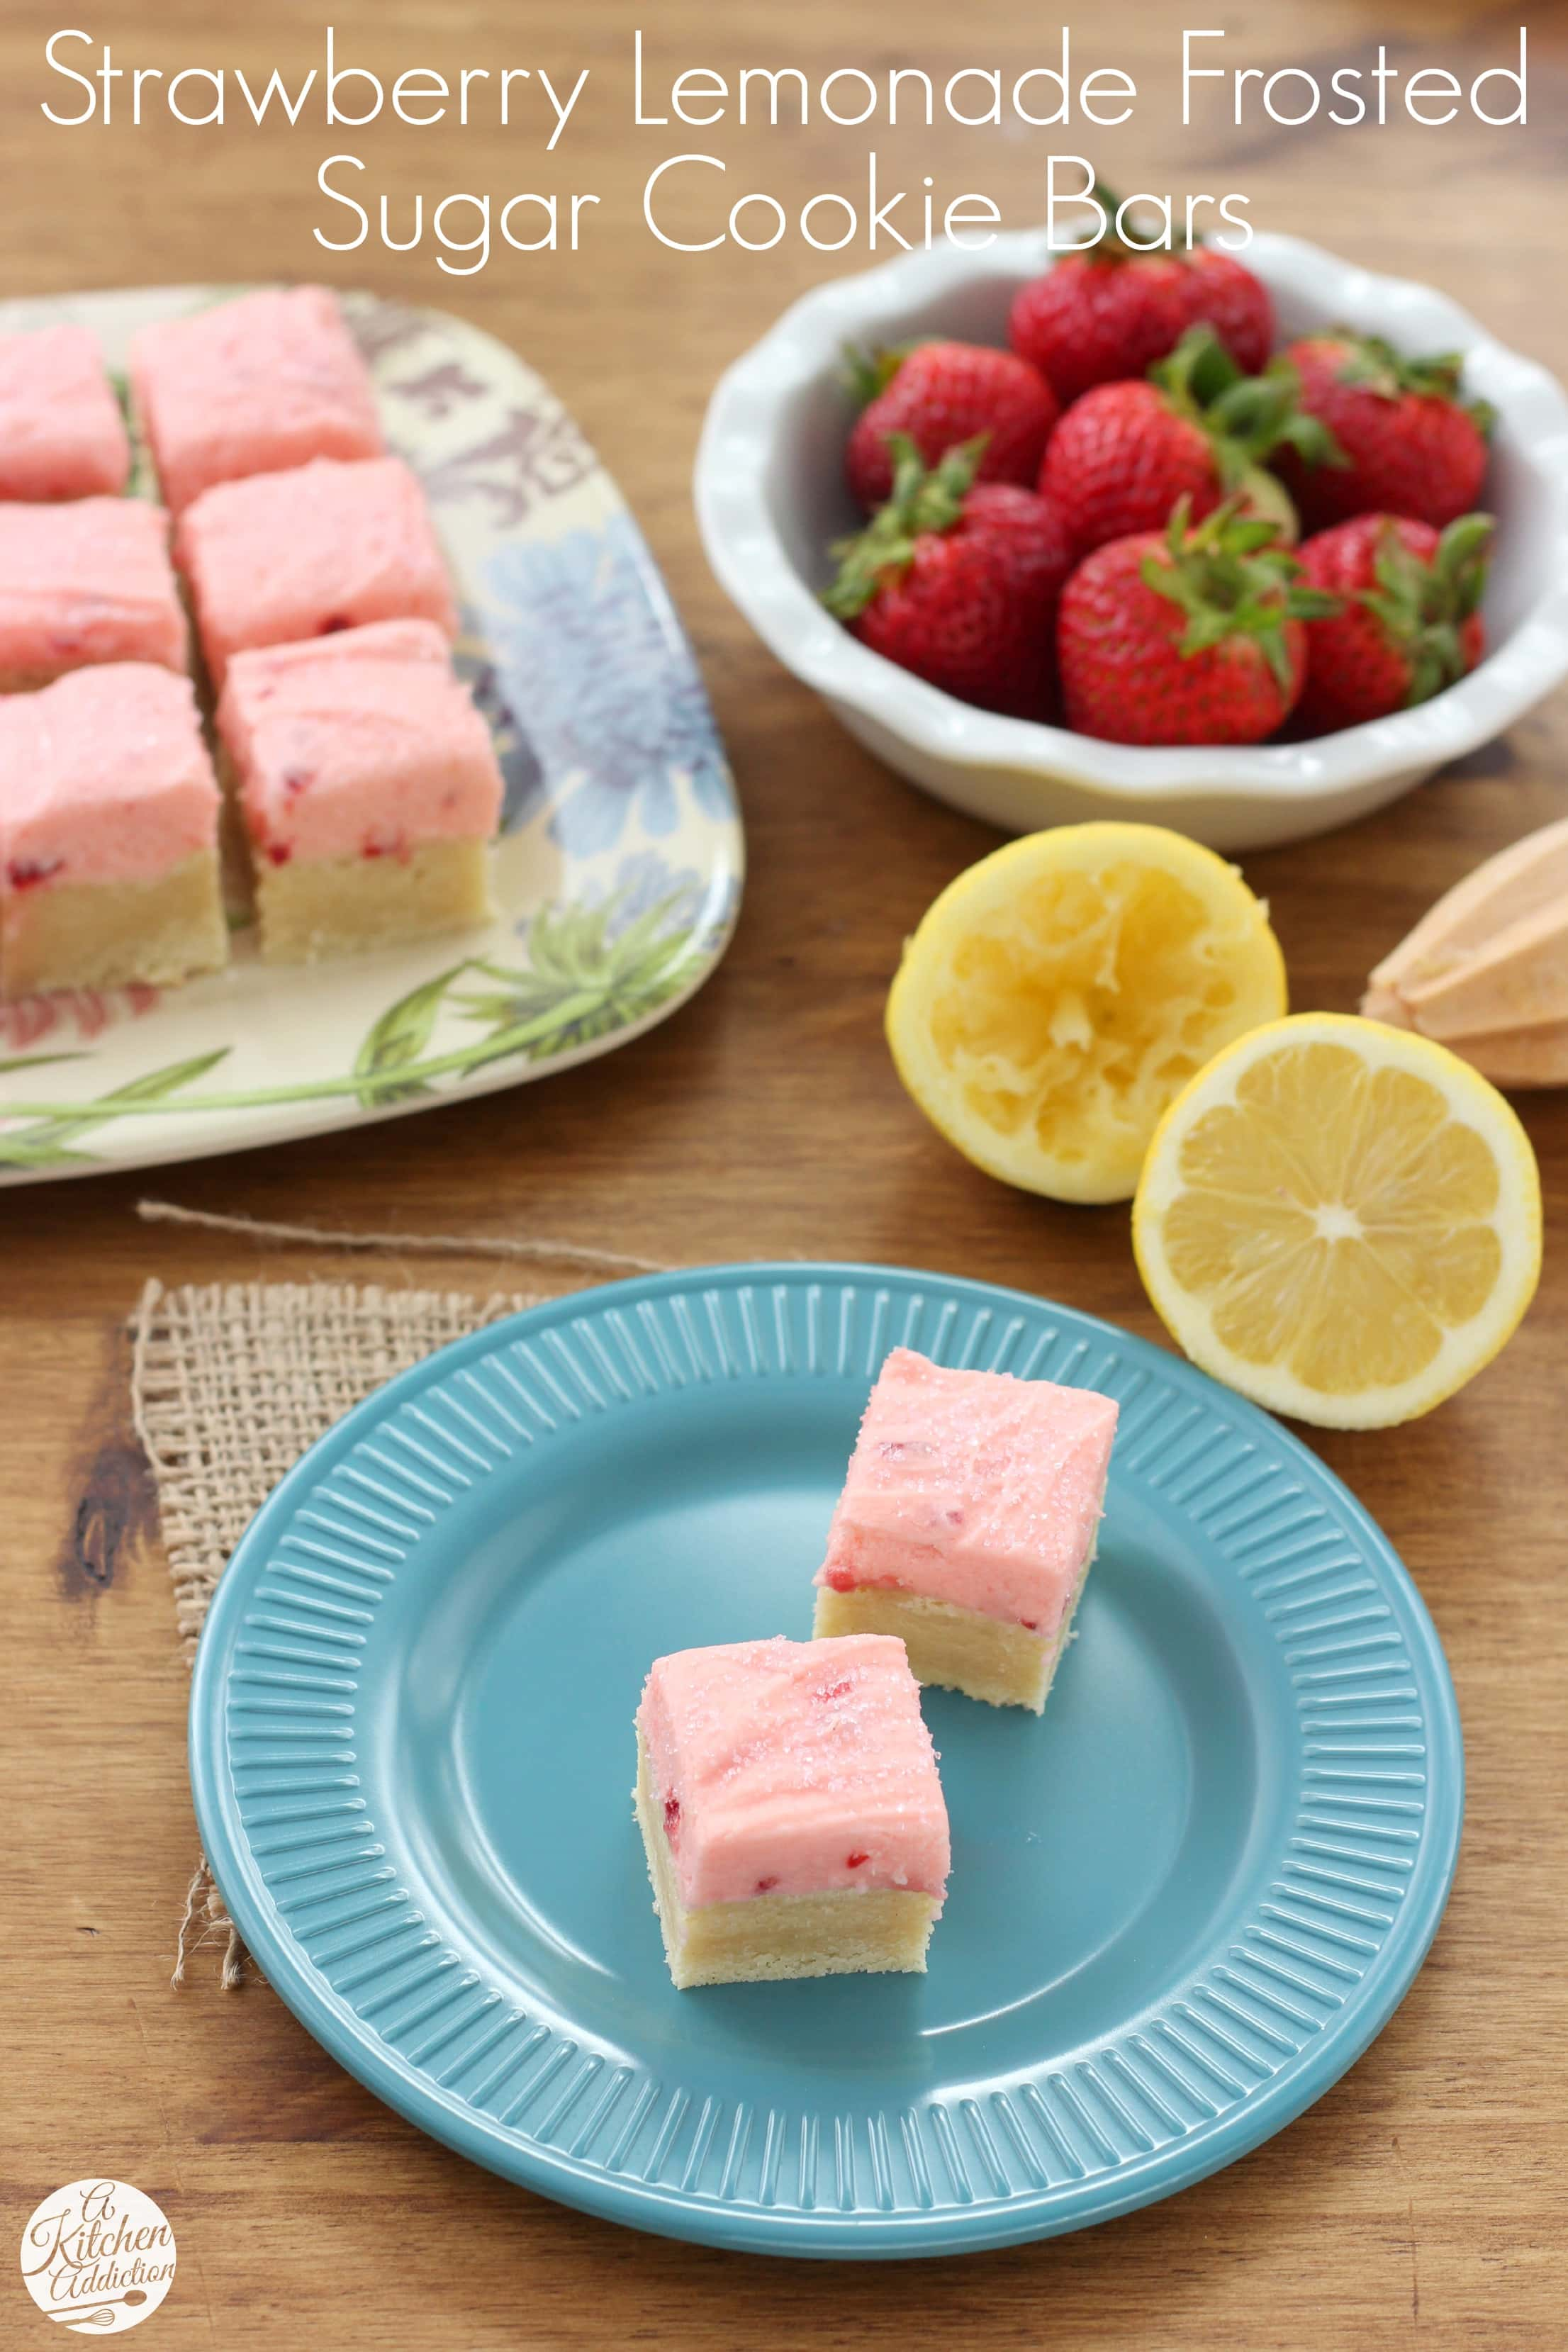 Strawberry Lemonade Frosted Sugar Cookie Bars - A Kitchen Addiction